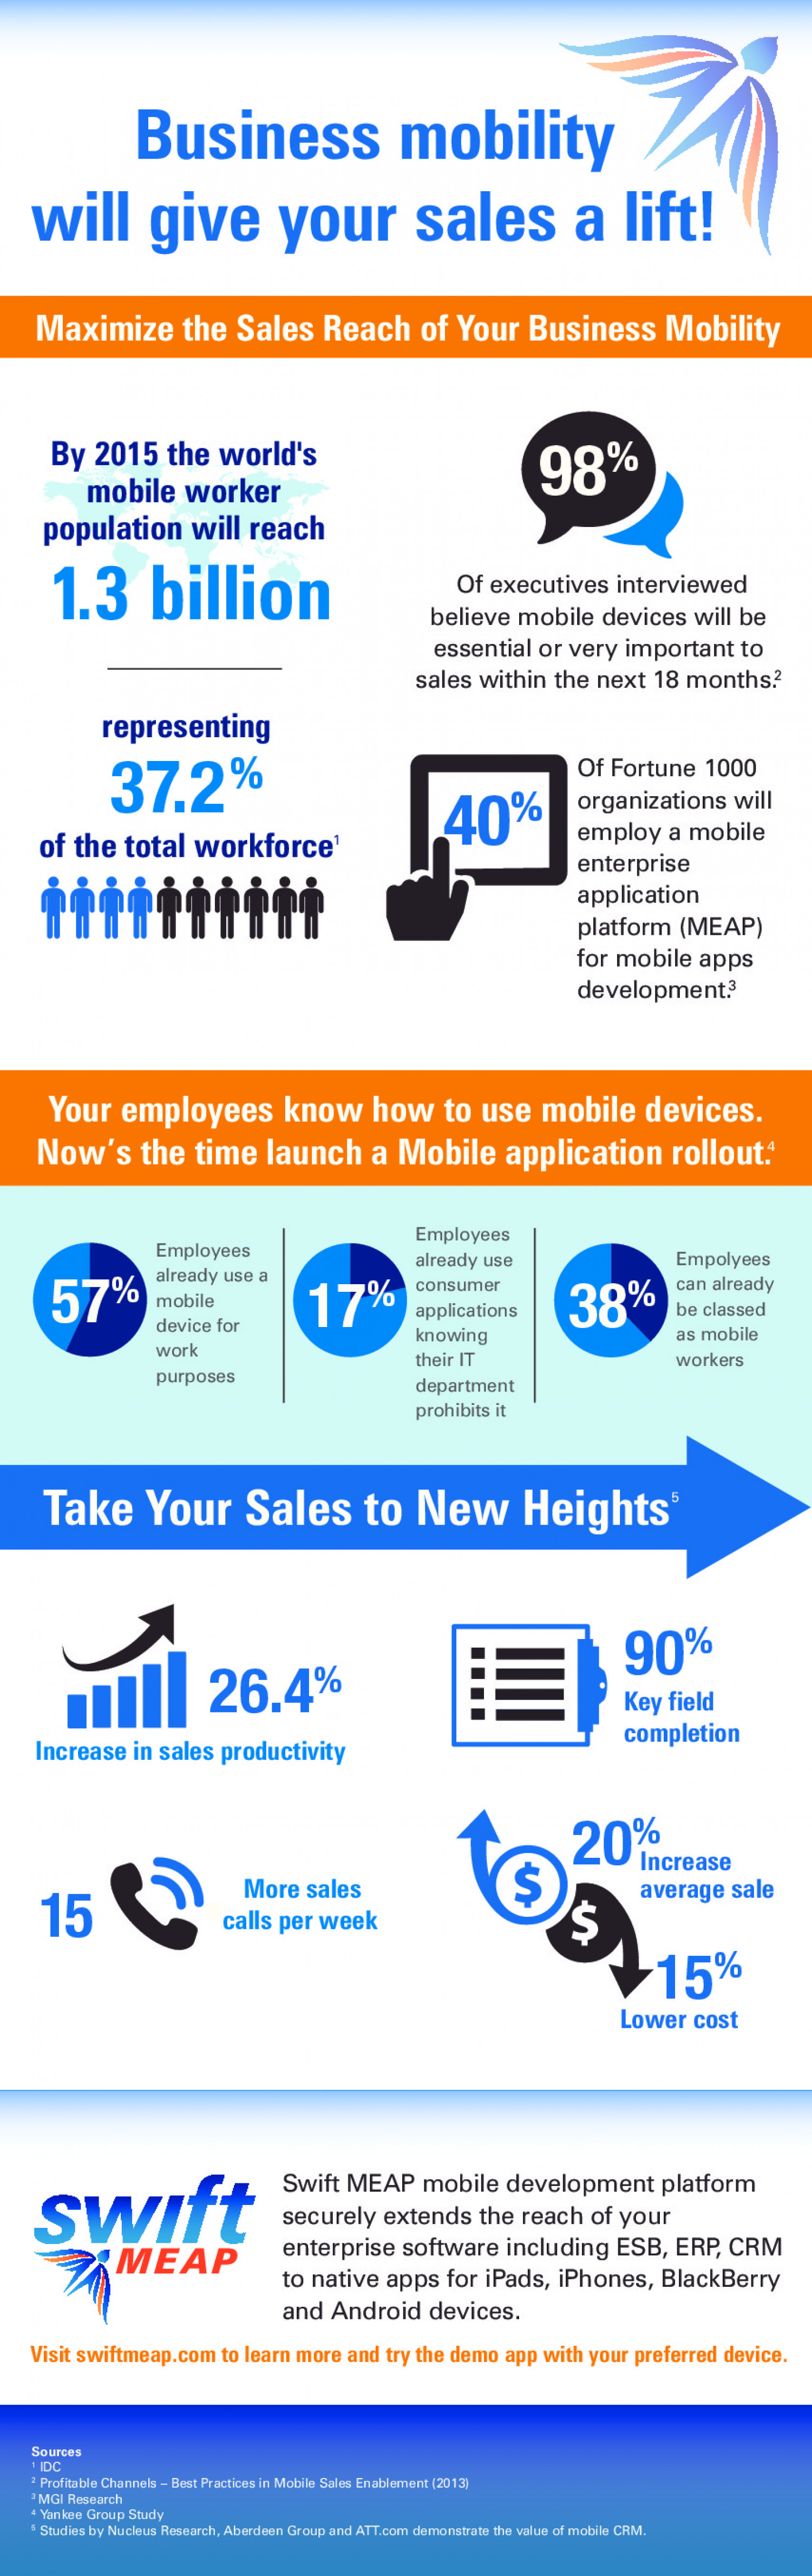 Business Mobility Will Give Your Sales A Lift! Infographic